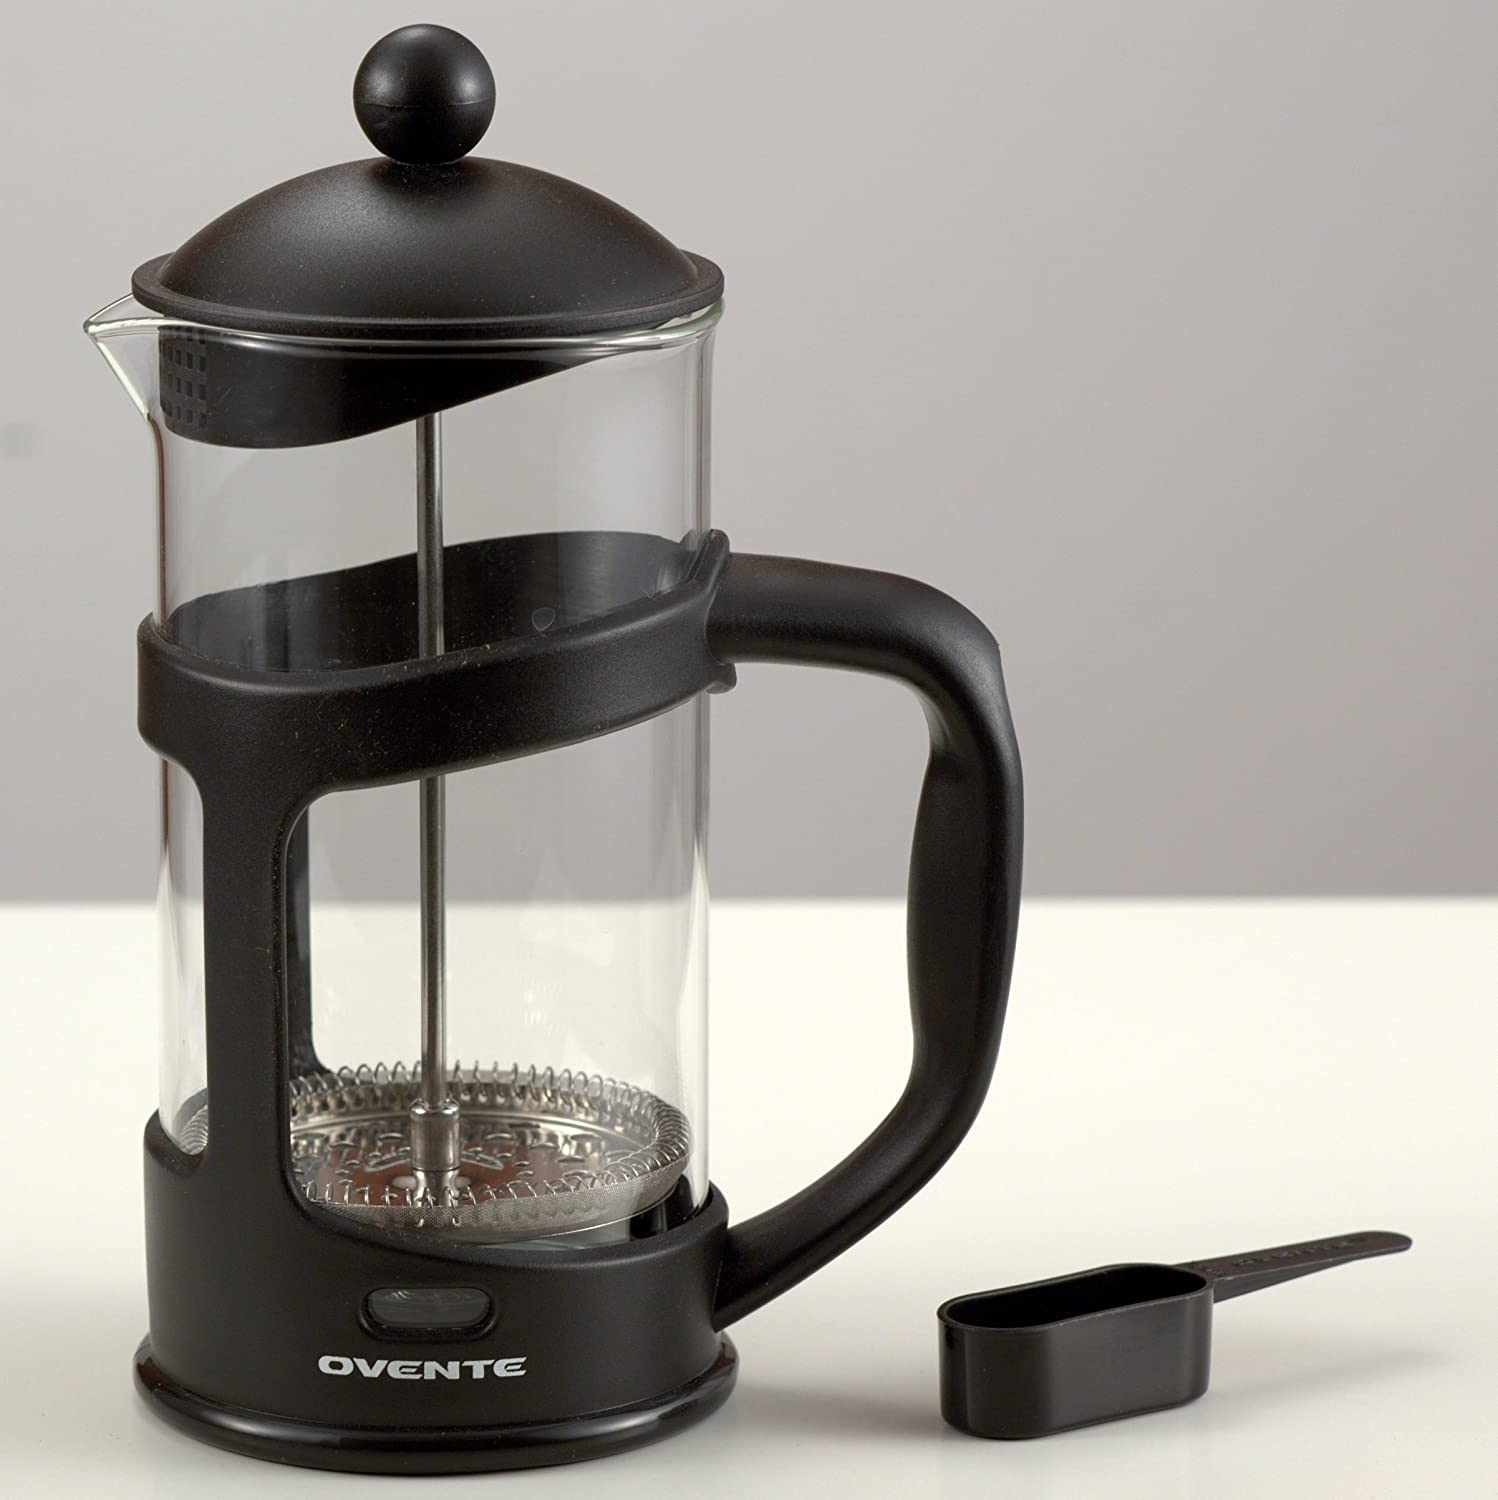 Bed bath beyond french press - Amazon Com Ovente French Press Cafeti Re Coffee And Tea Maker Heat Resistant Borosilicate Glass 12 Oz 350 Ml 3 Cup Black Fpt12b Free Measuring